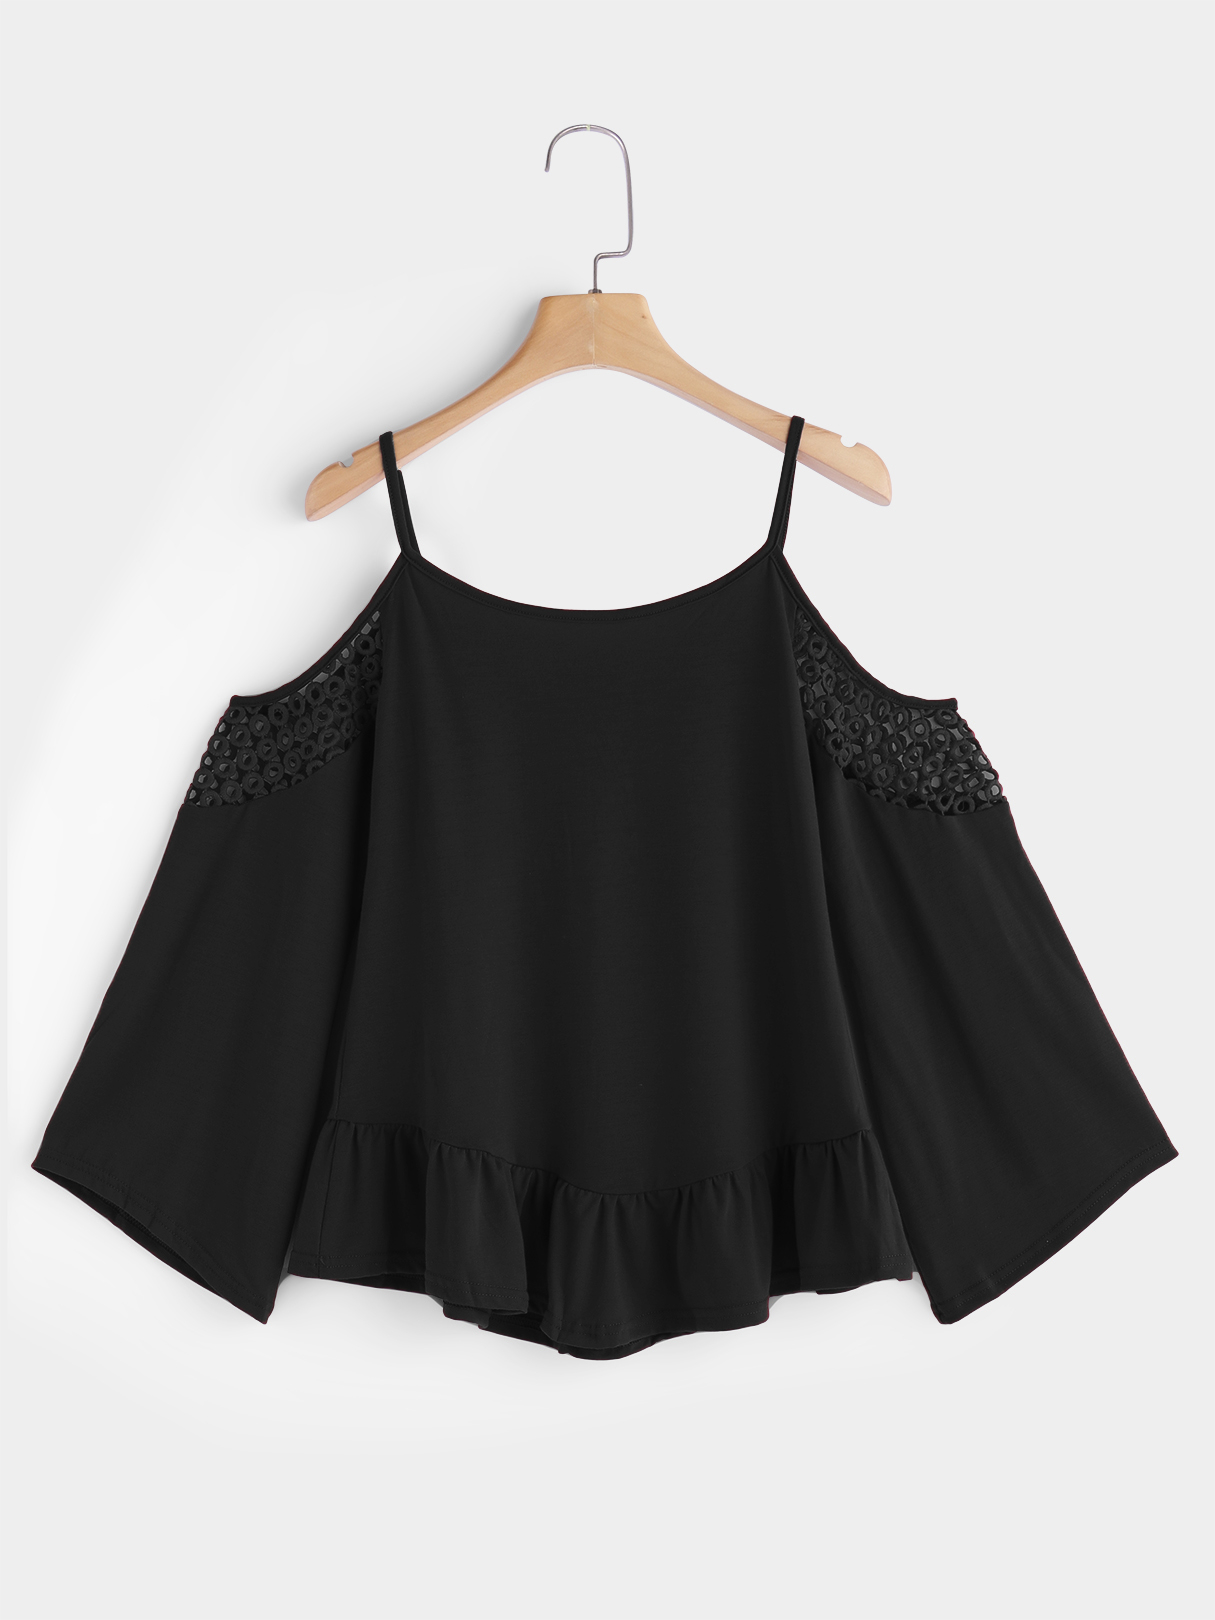 Black Hollow Detials Cold Shoulder Lace Up Details Long Flared Sleeves Blouse black sexy cold shoulder halter design long sleeves blouse